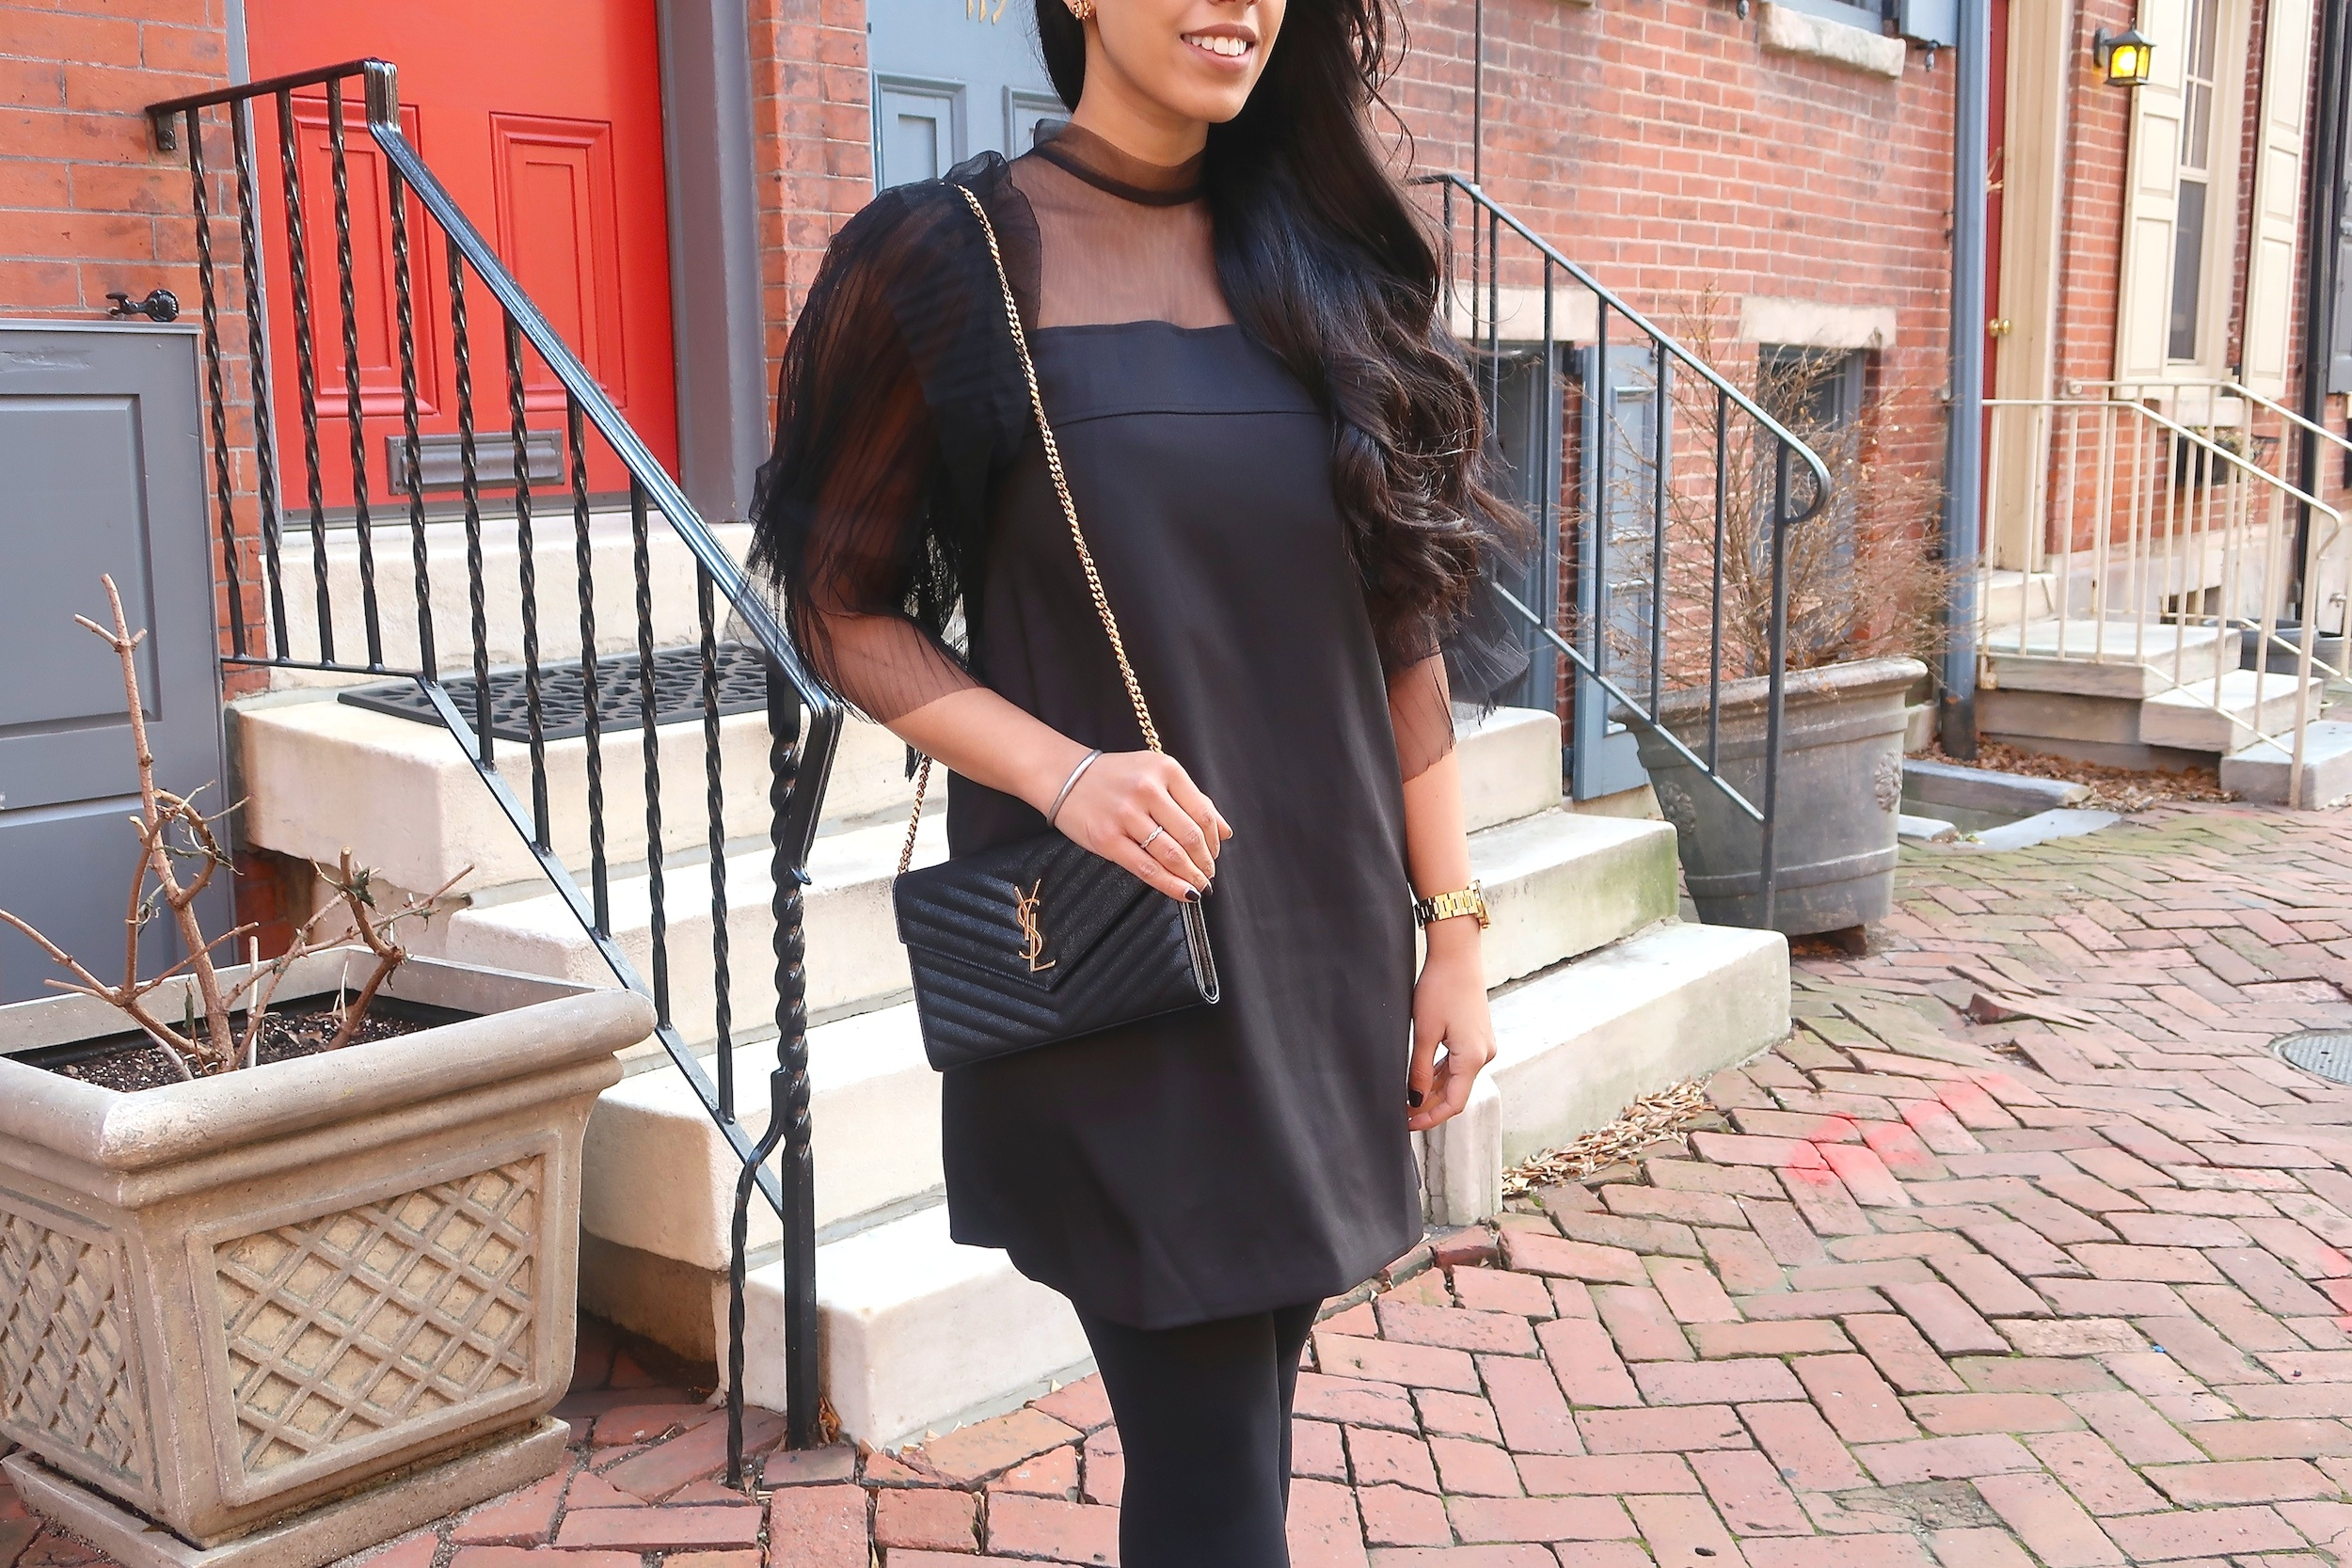 saint-laurent-little-black-dress-fashion-blogger.JPG